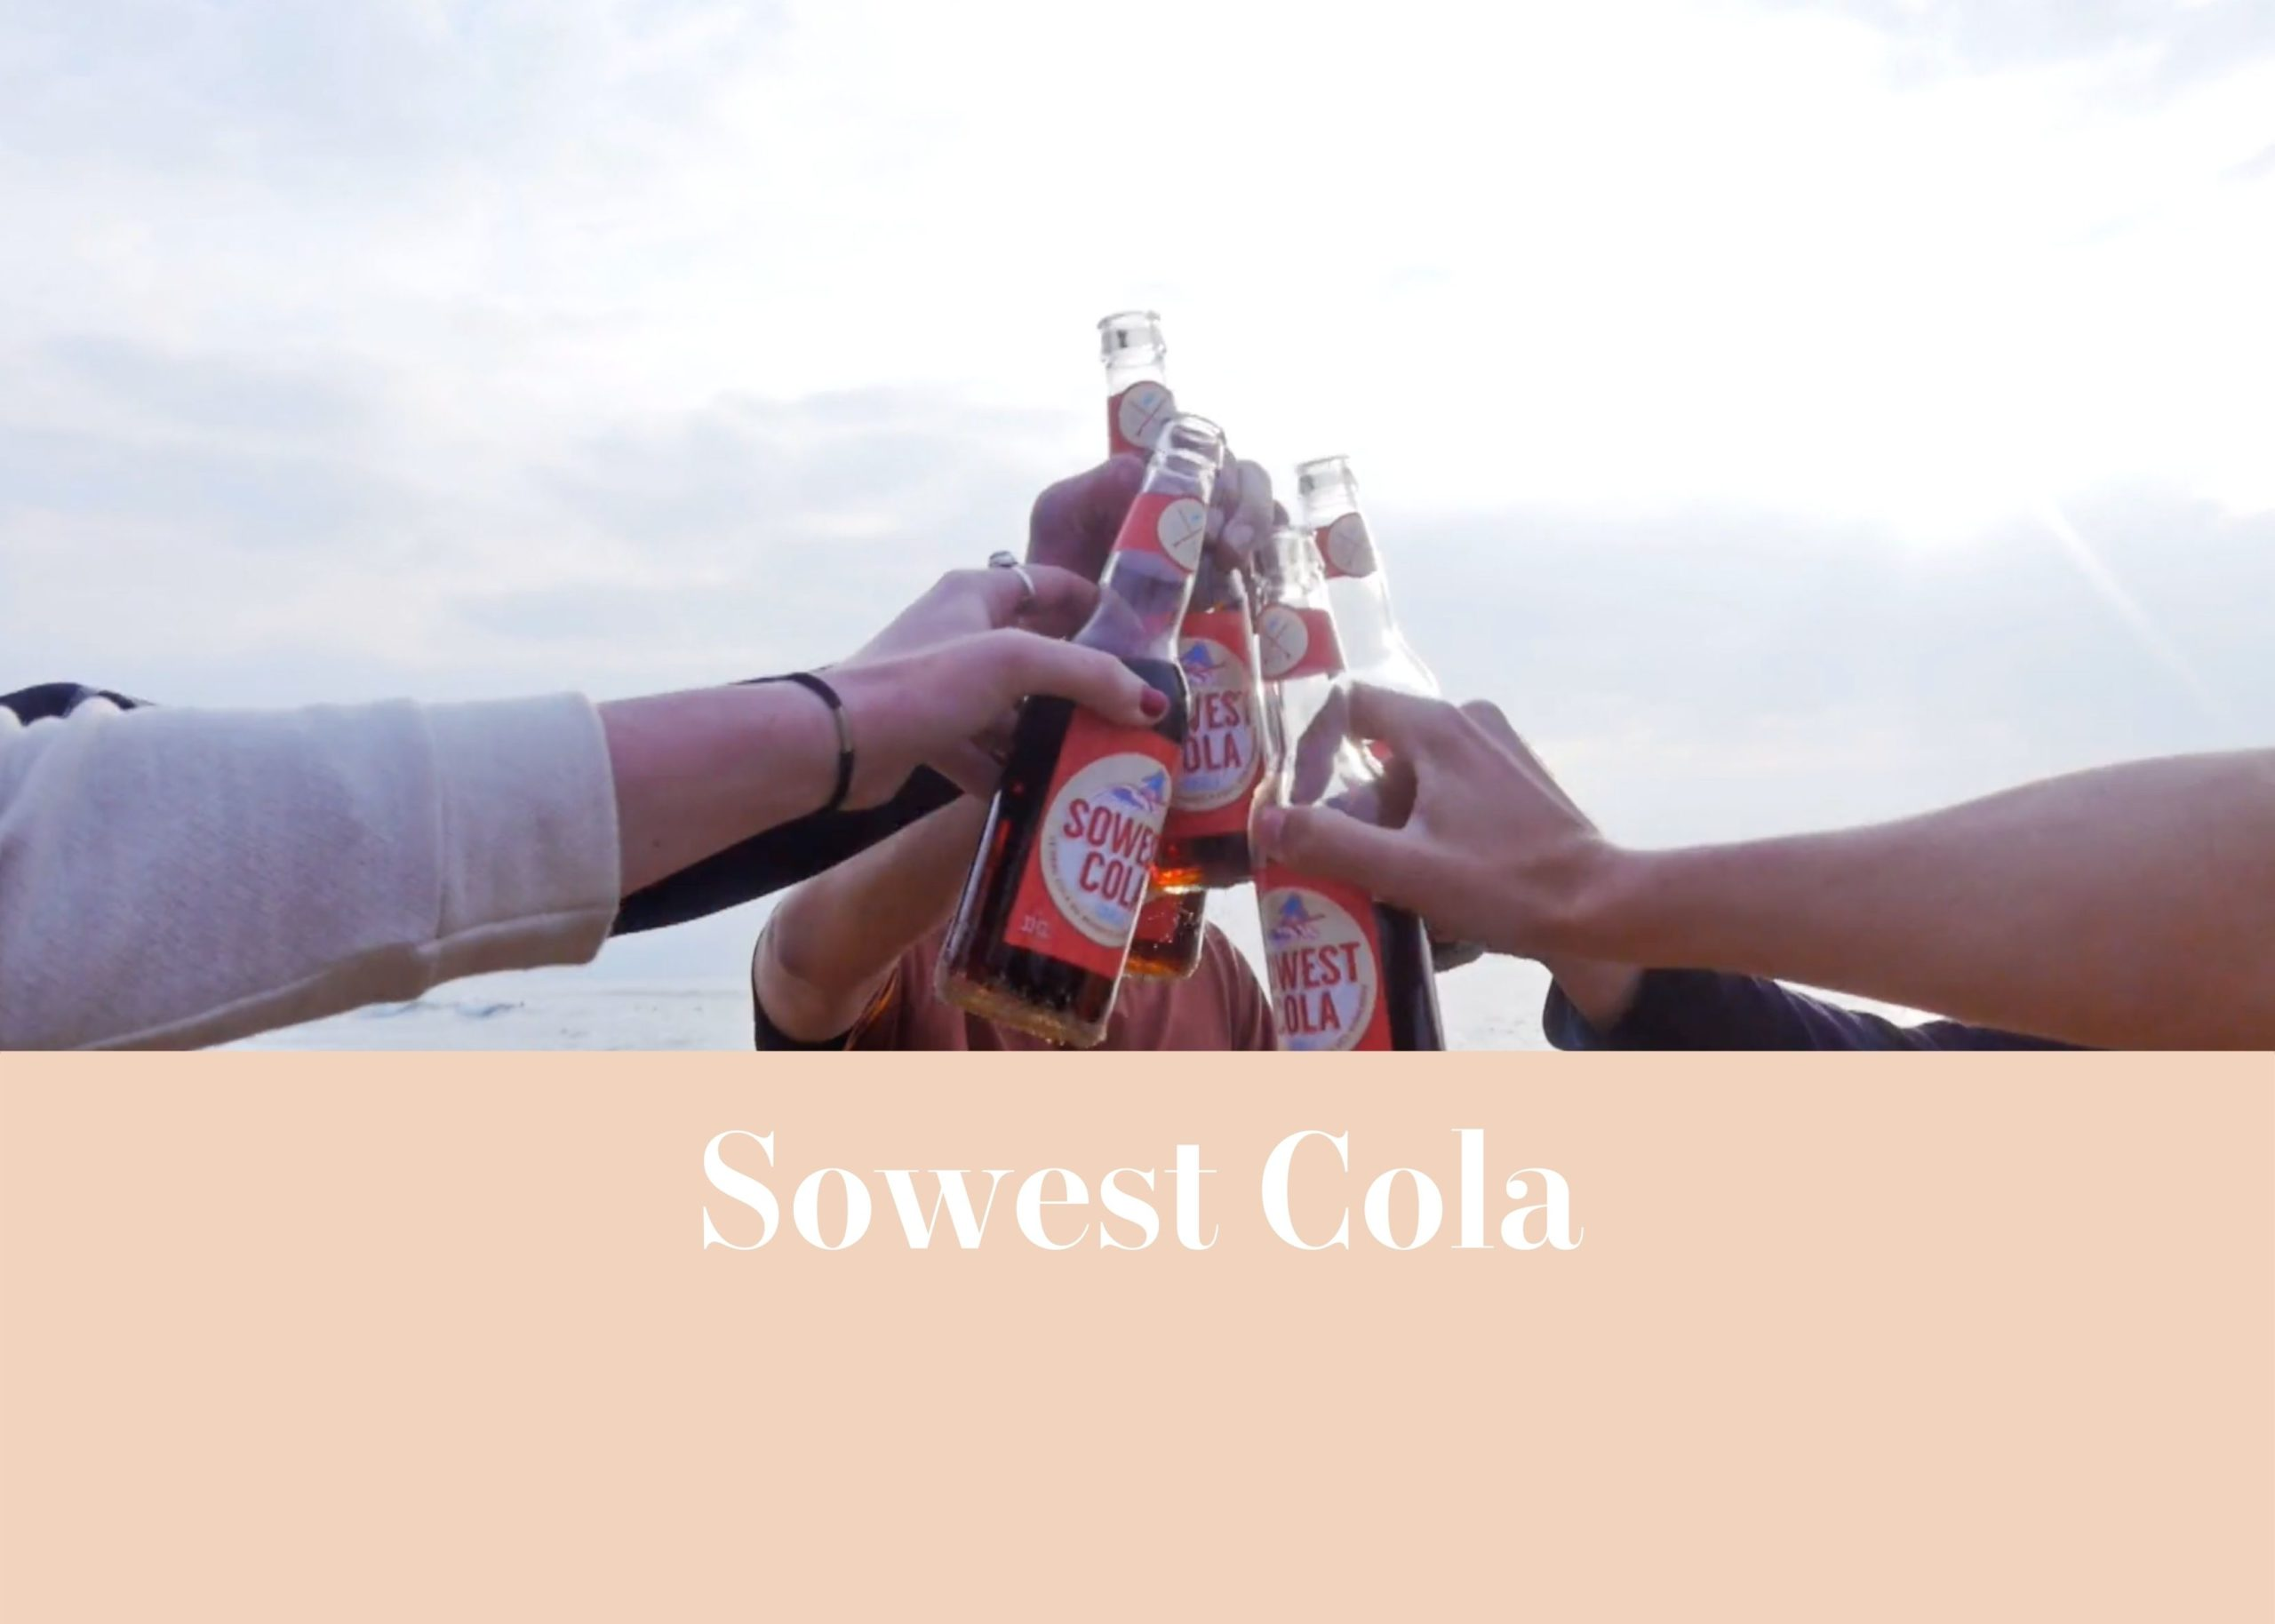 Sowest Cola